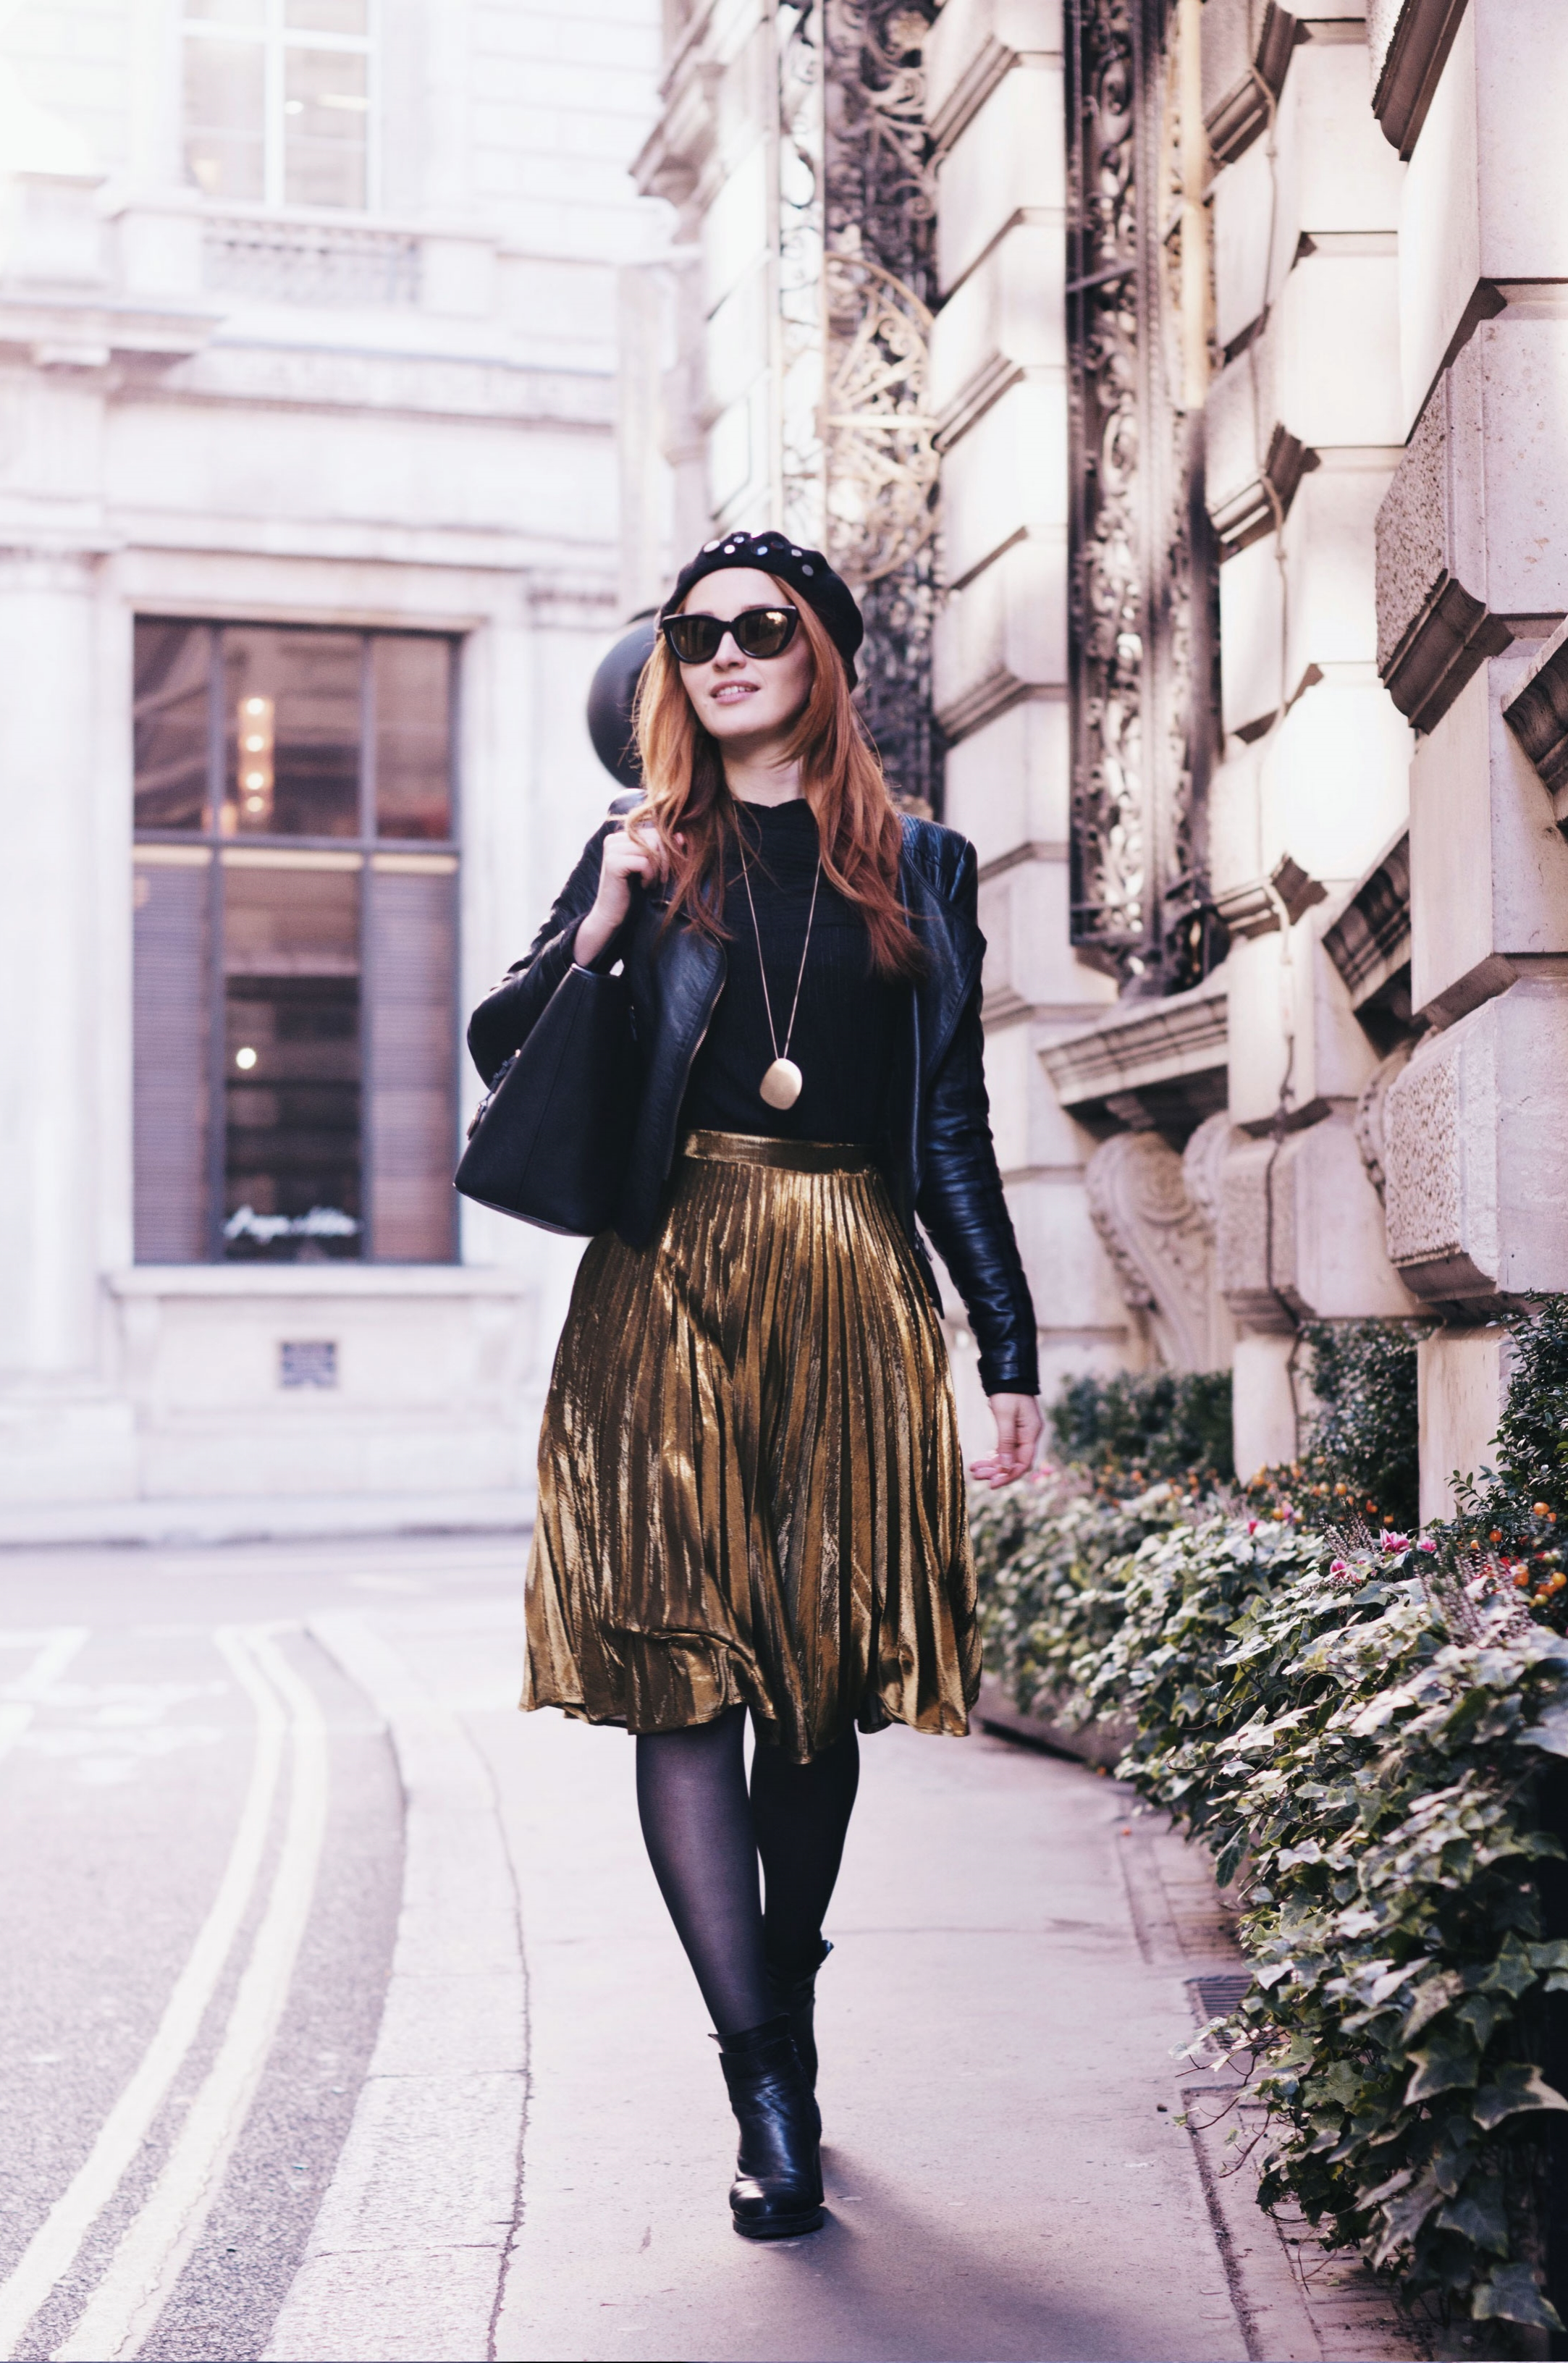 www.fashionartista.com - why everyone is obsessed with the pleated skirt trend